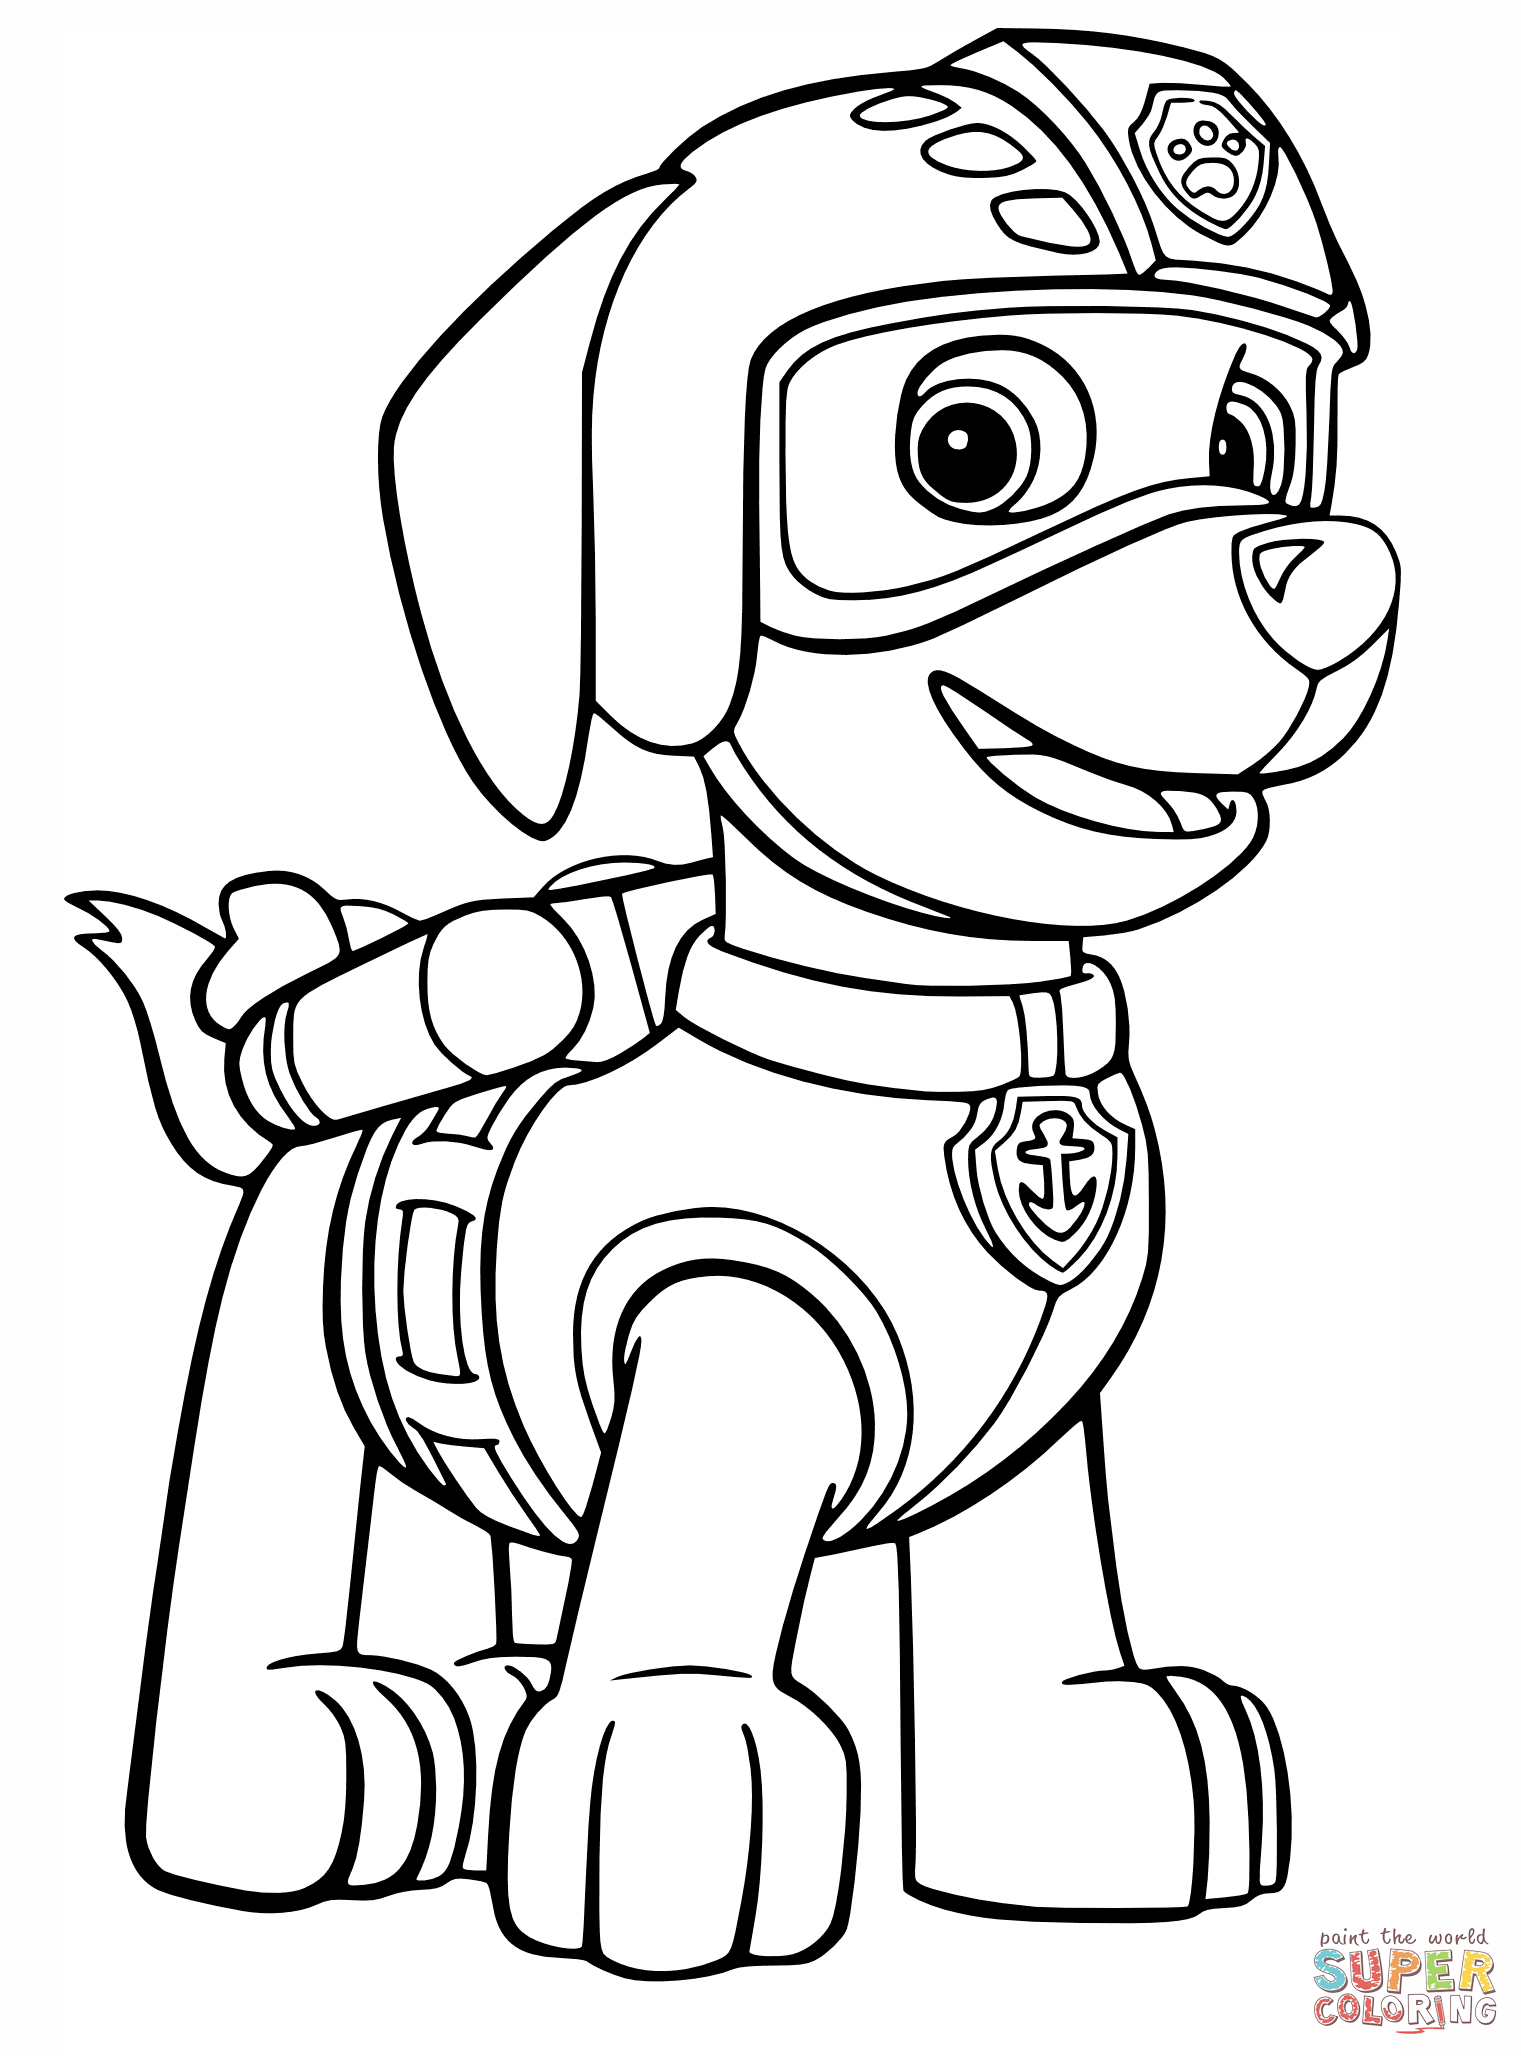 Paw Patrol Zuma Coloring Pages 01 Paw Patrol Coloring Pages Paw Patrol Coloring Paw Patrol Printables